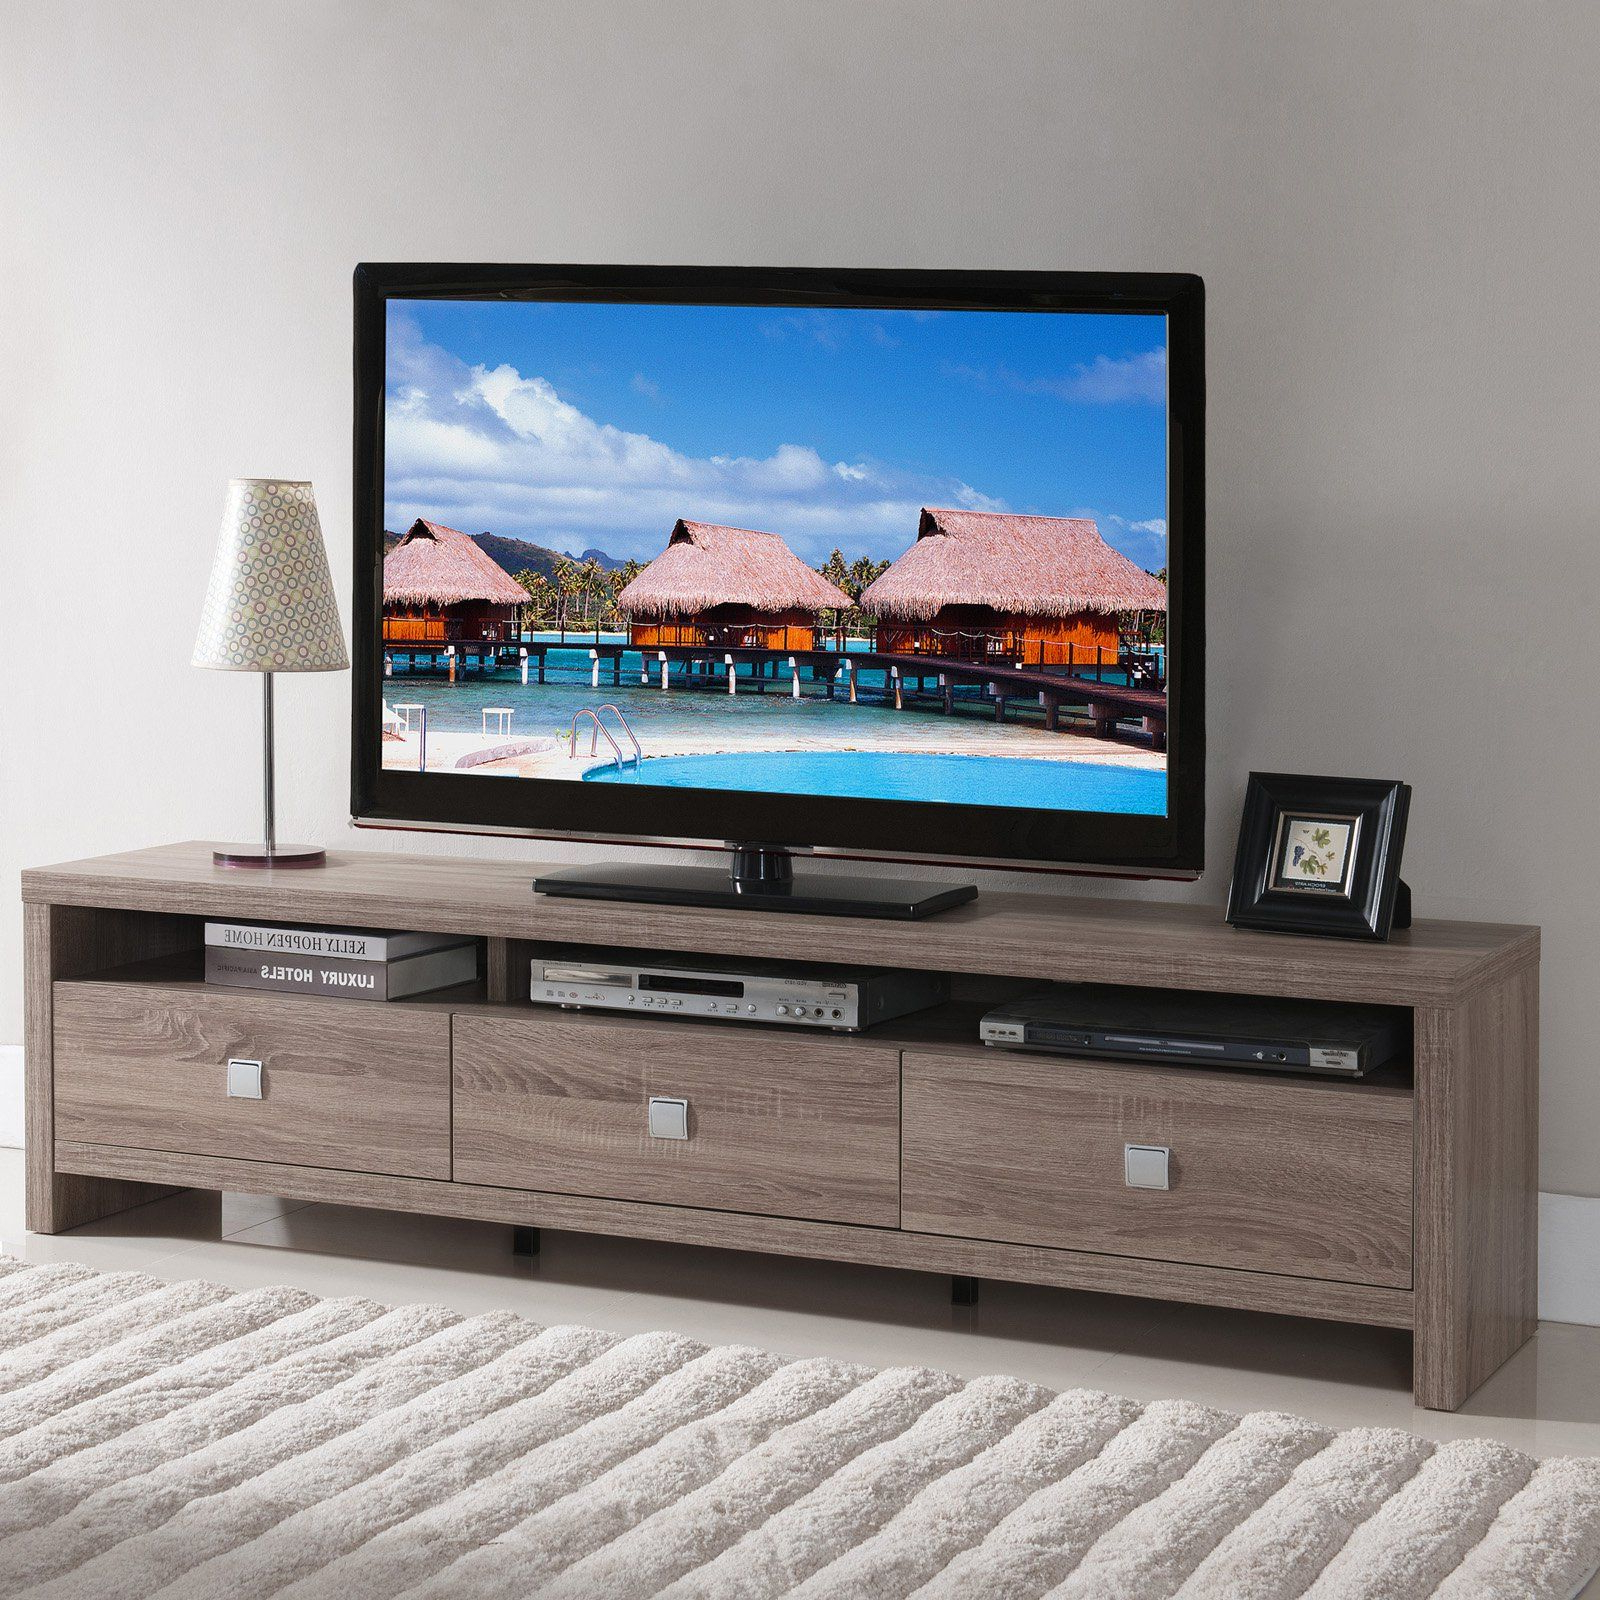 Furniture Of America Contemporary Tv Stand | From Hayneedle Intended For Kenzie 60 Inch Open Display Tv Stands (View 15 of 20)